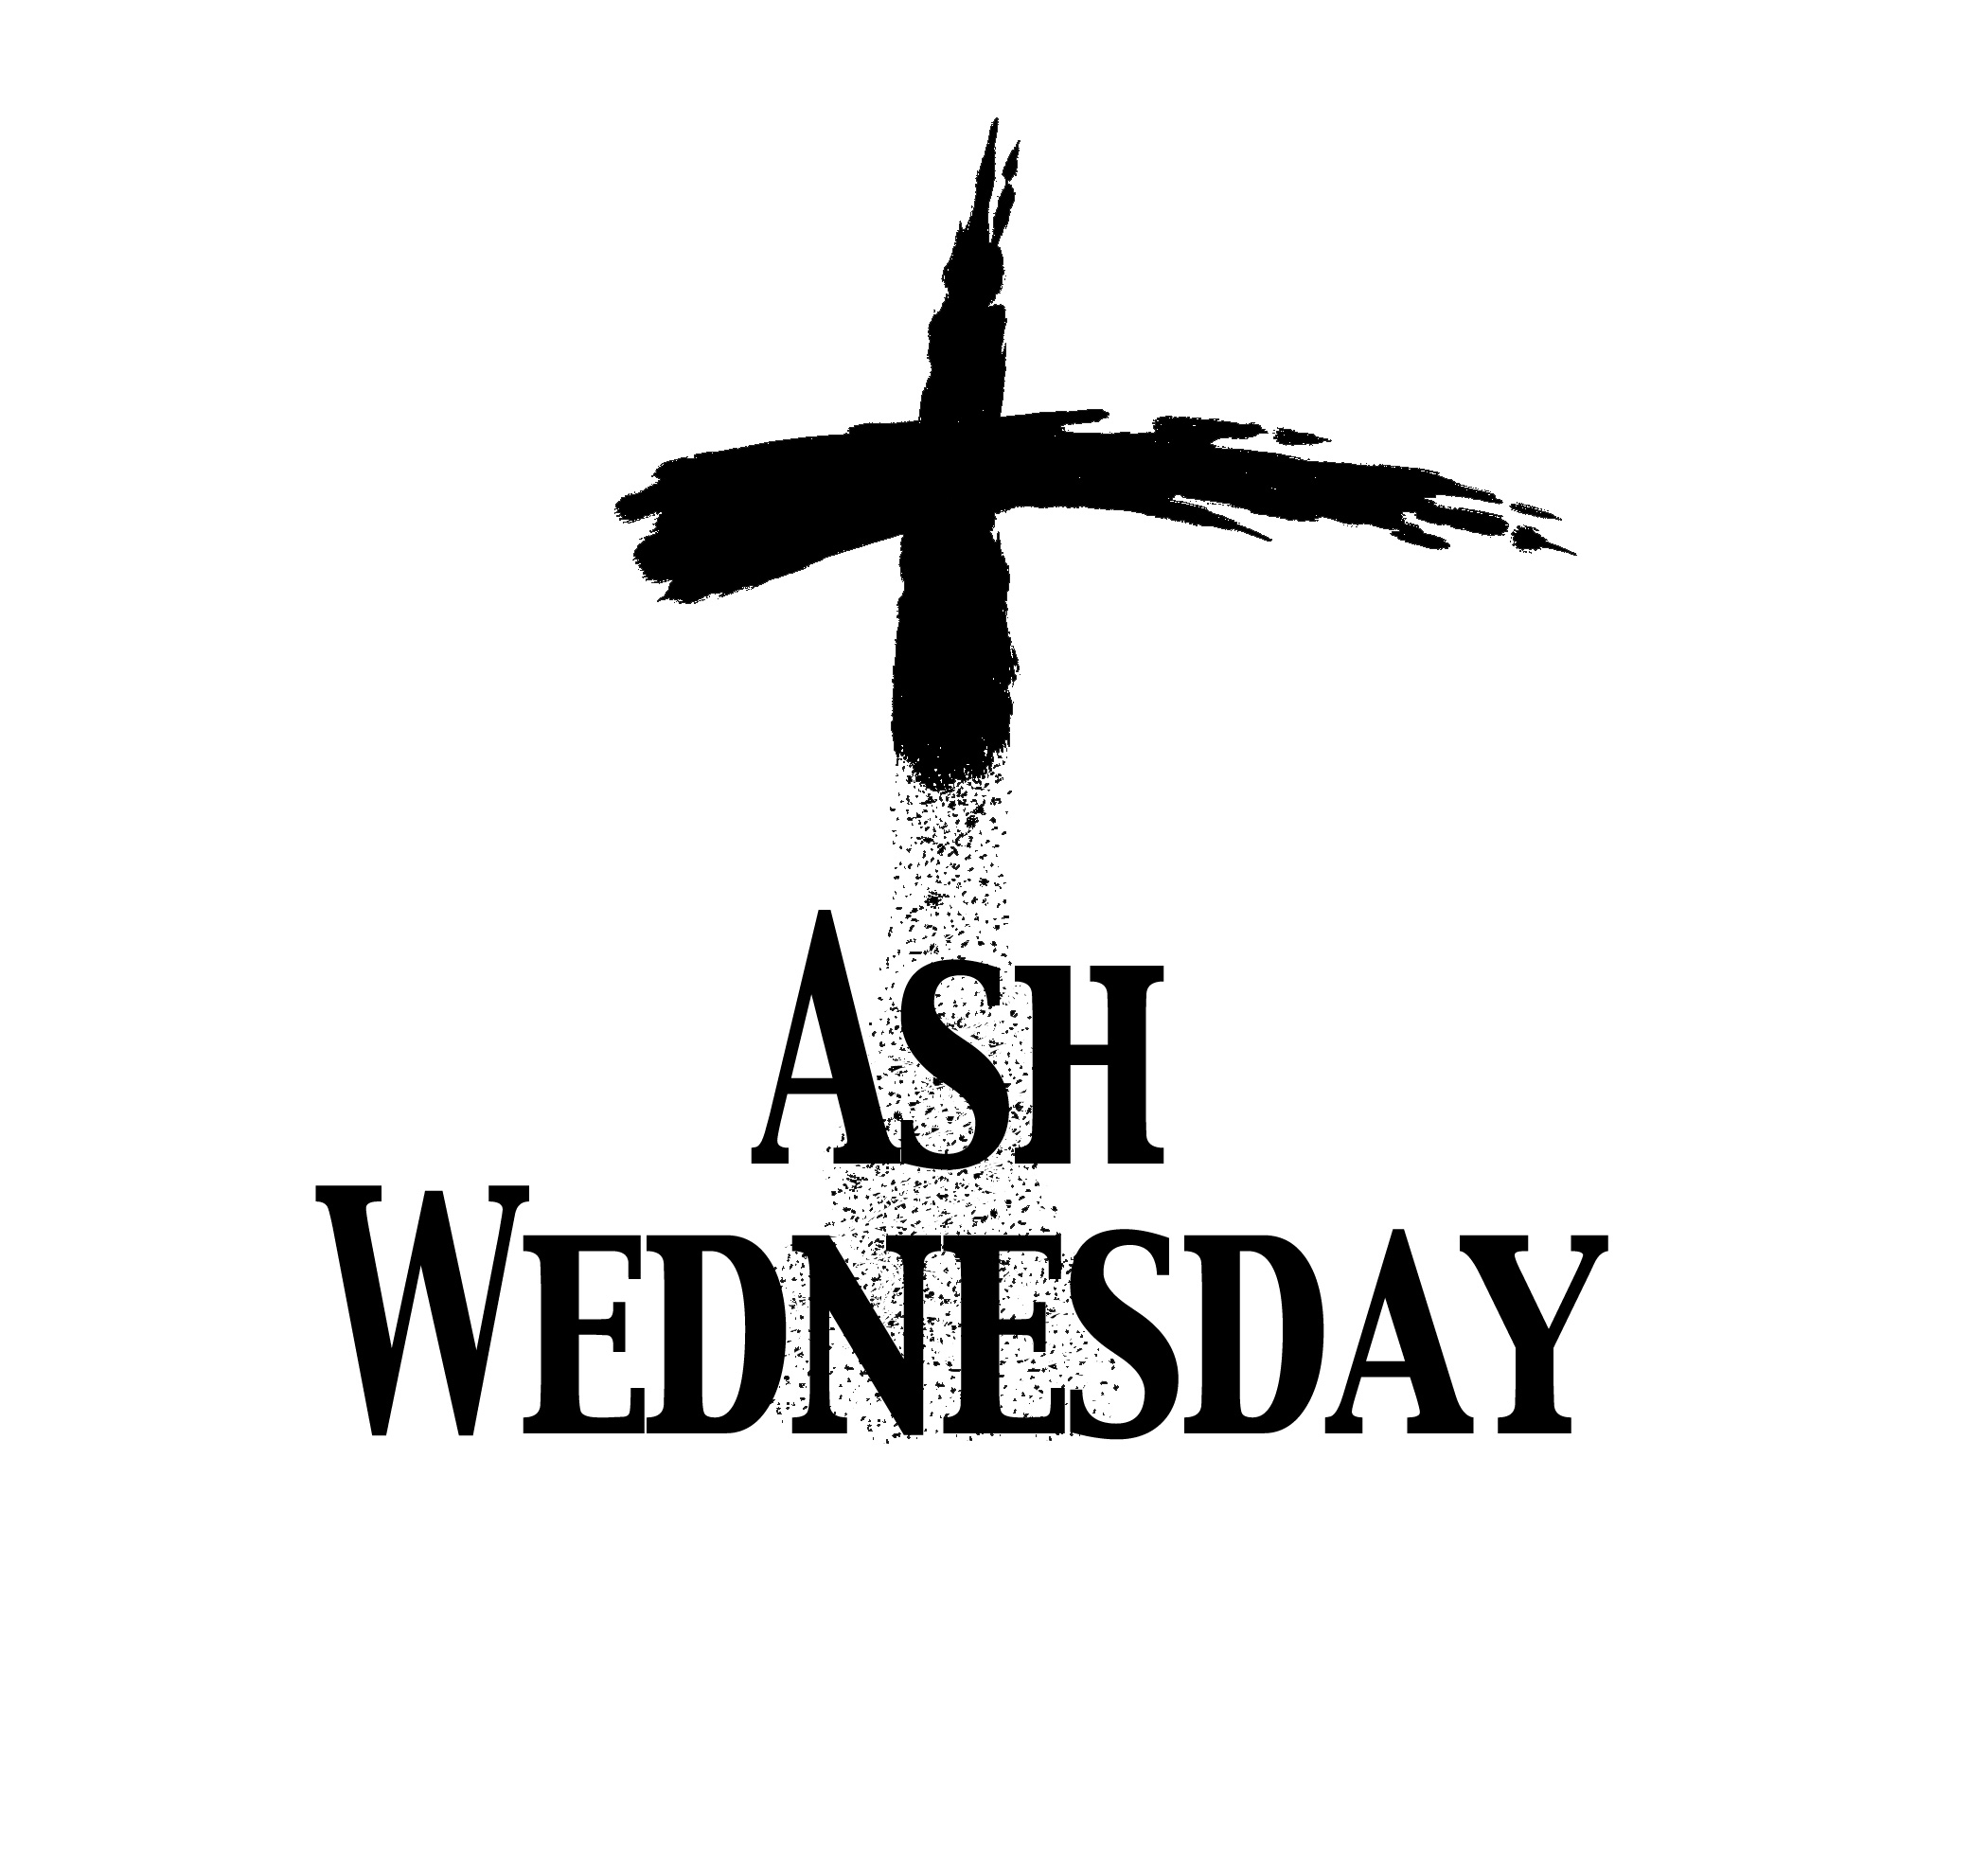 Ash wednesday the meaning behind this lenten tradition ash wednesday the meaning behind this lenten tradition buycottarizona Image collections